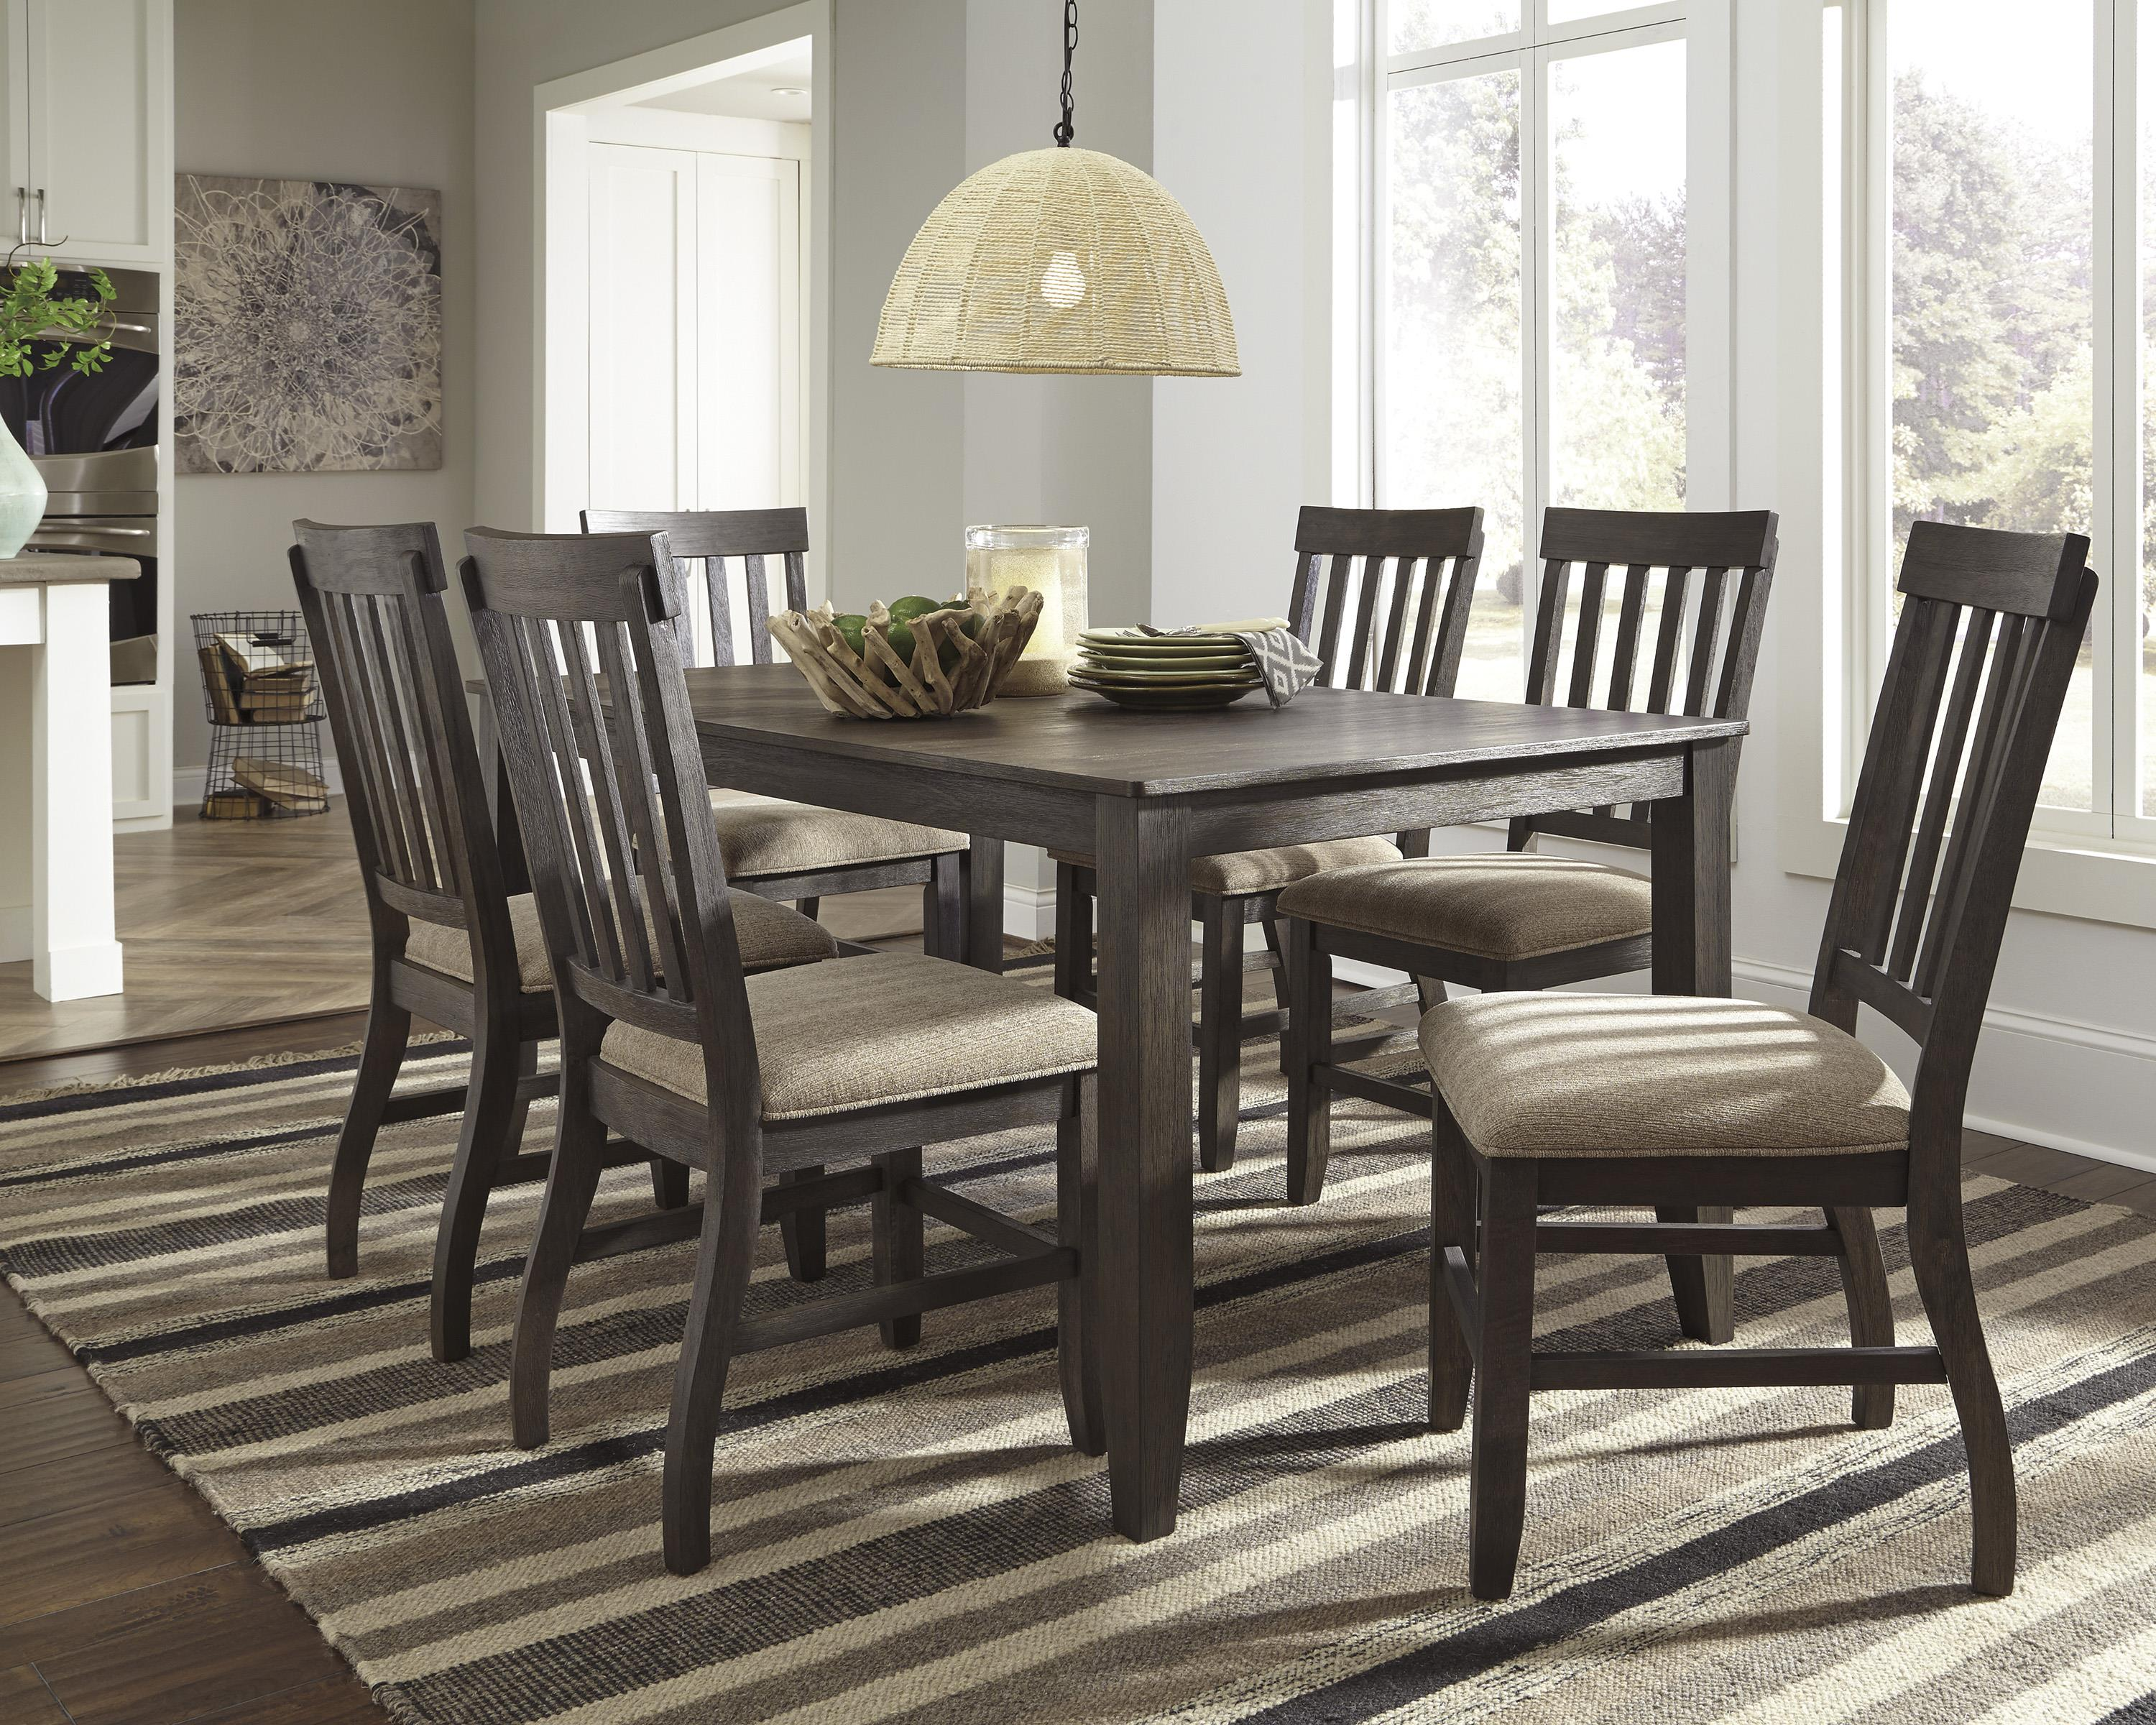 Signature Design By Ashley Dresbar Rectangular Dining Room Table